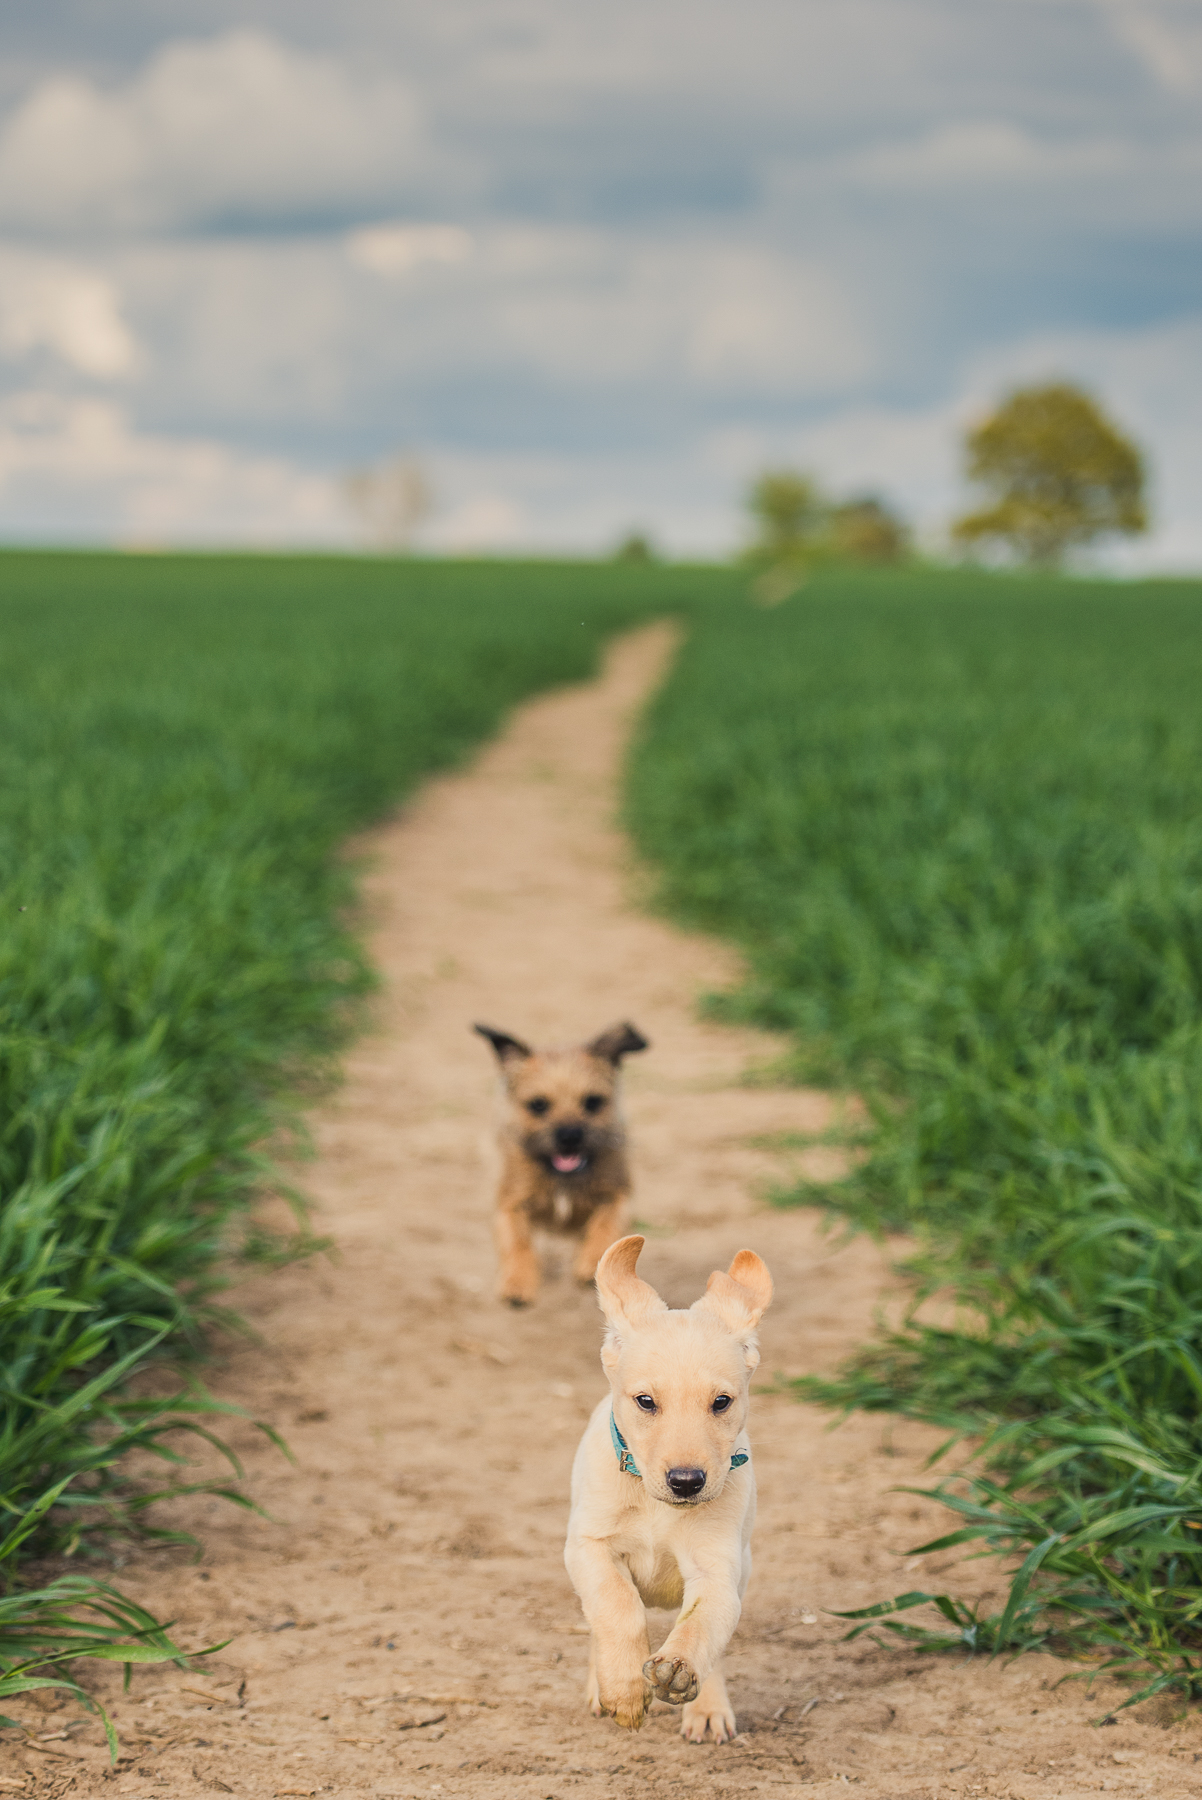 A terrier chasing a labrador puppy